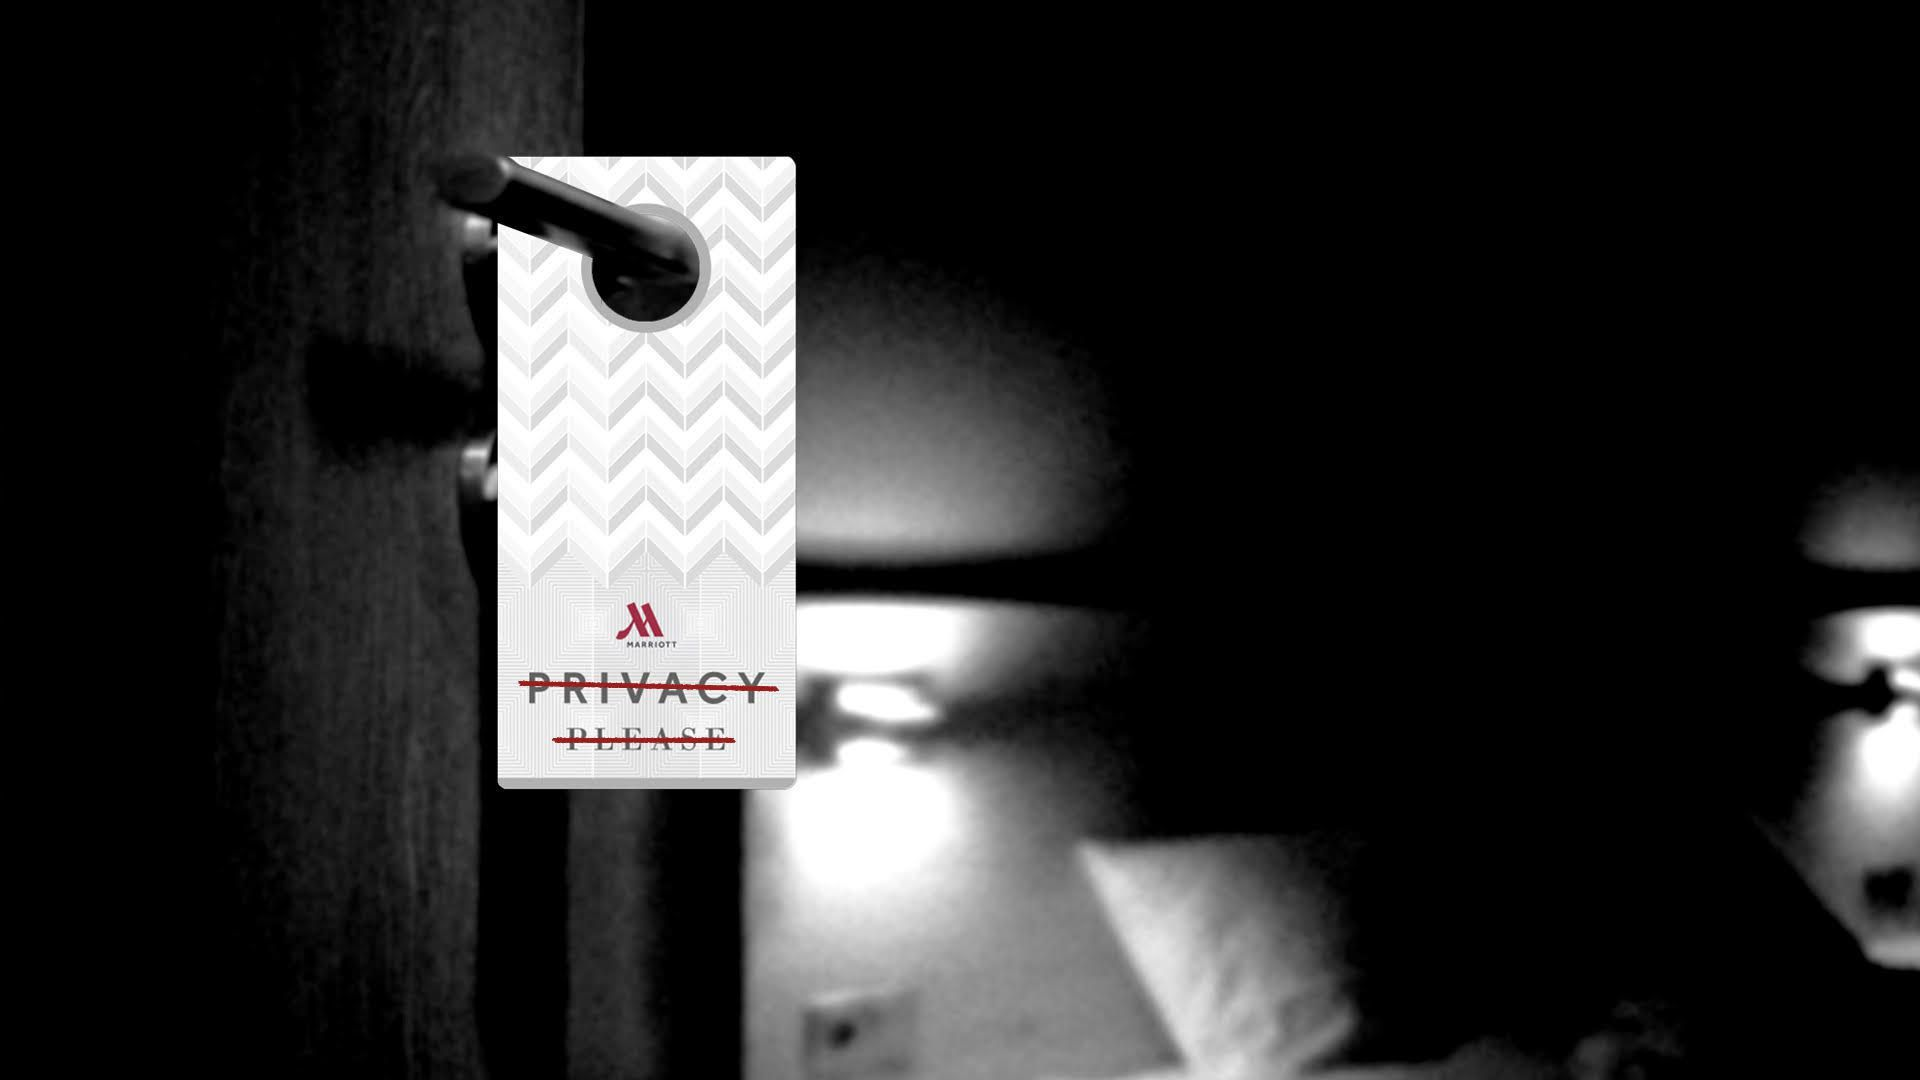 Illustration of a Marriott privacy please door hanger with the words crossed out